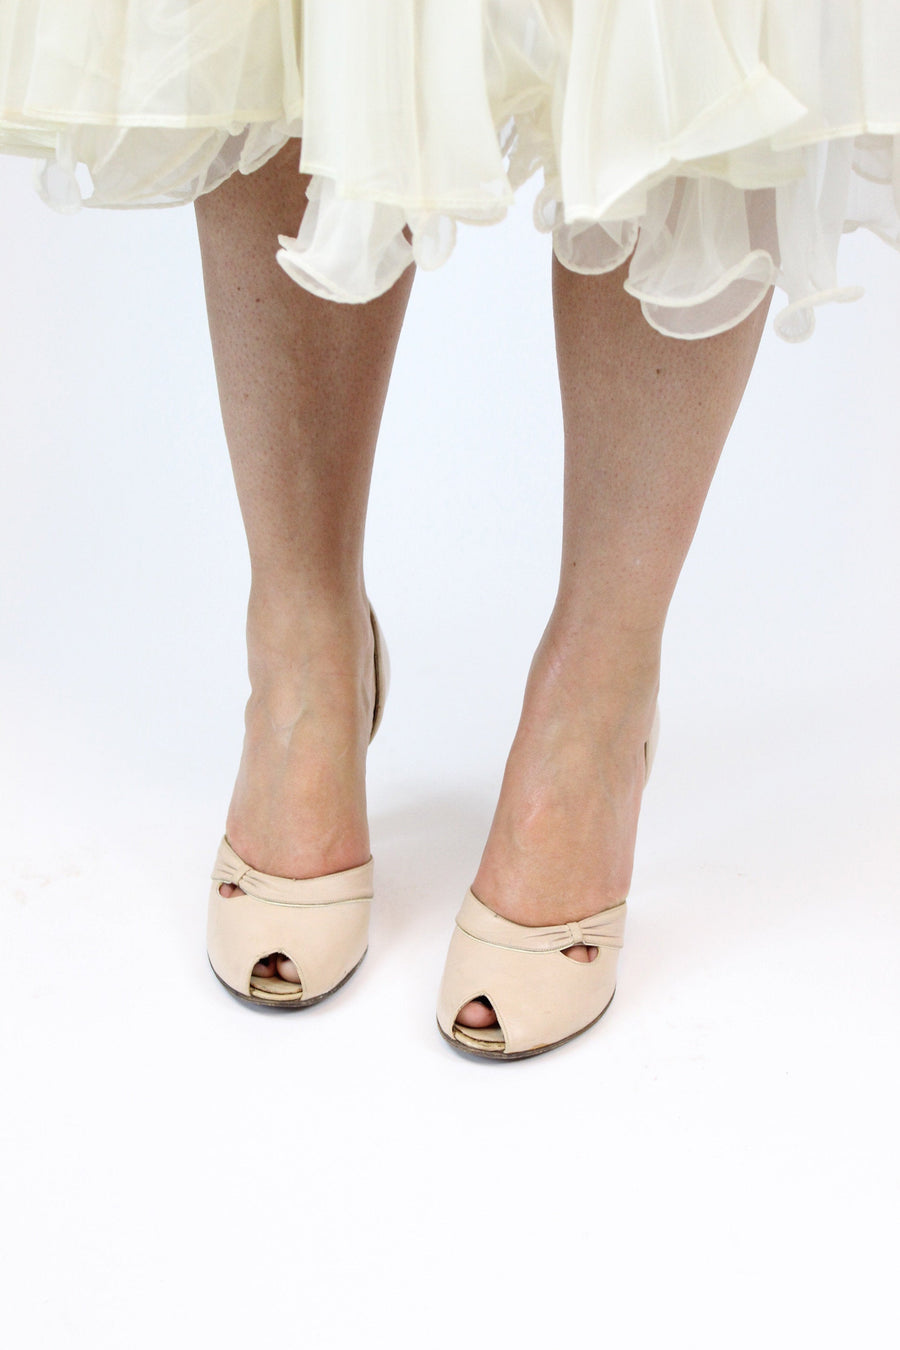 1950s QualiCraft shoes | peep toe pumps | size 6.5